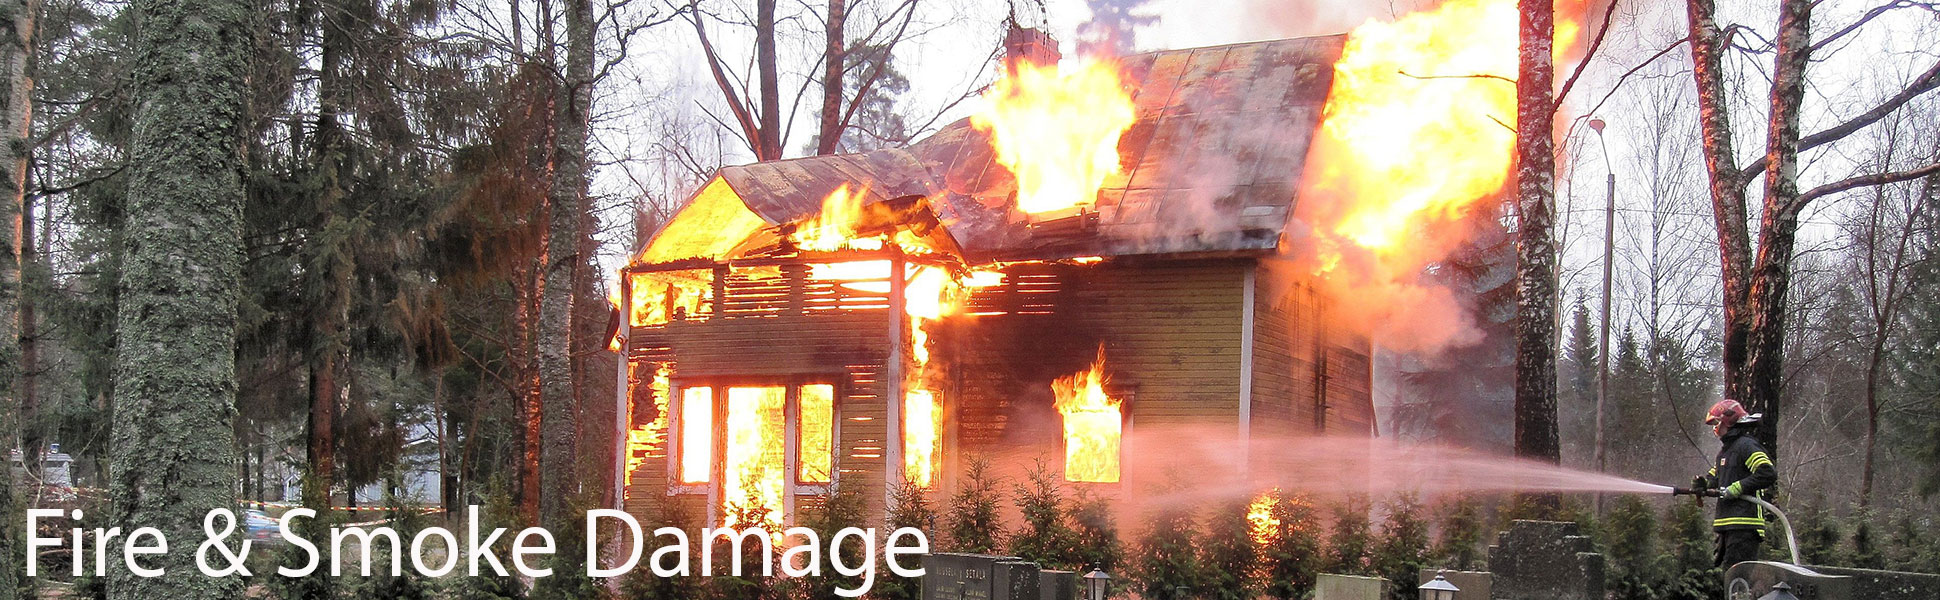 APLC-Fire-Smoke-Damage-claims-Wehandleinsuranceclaims.com